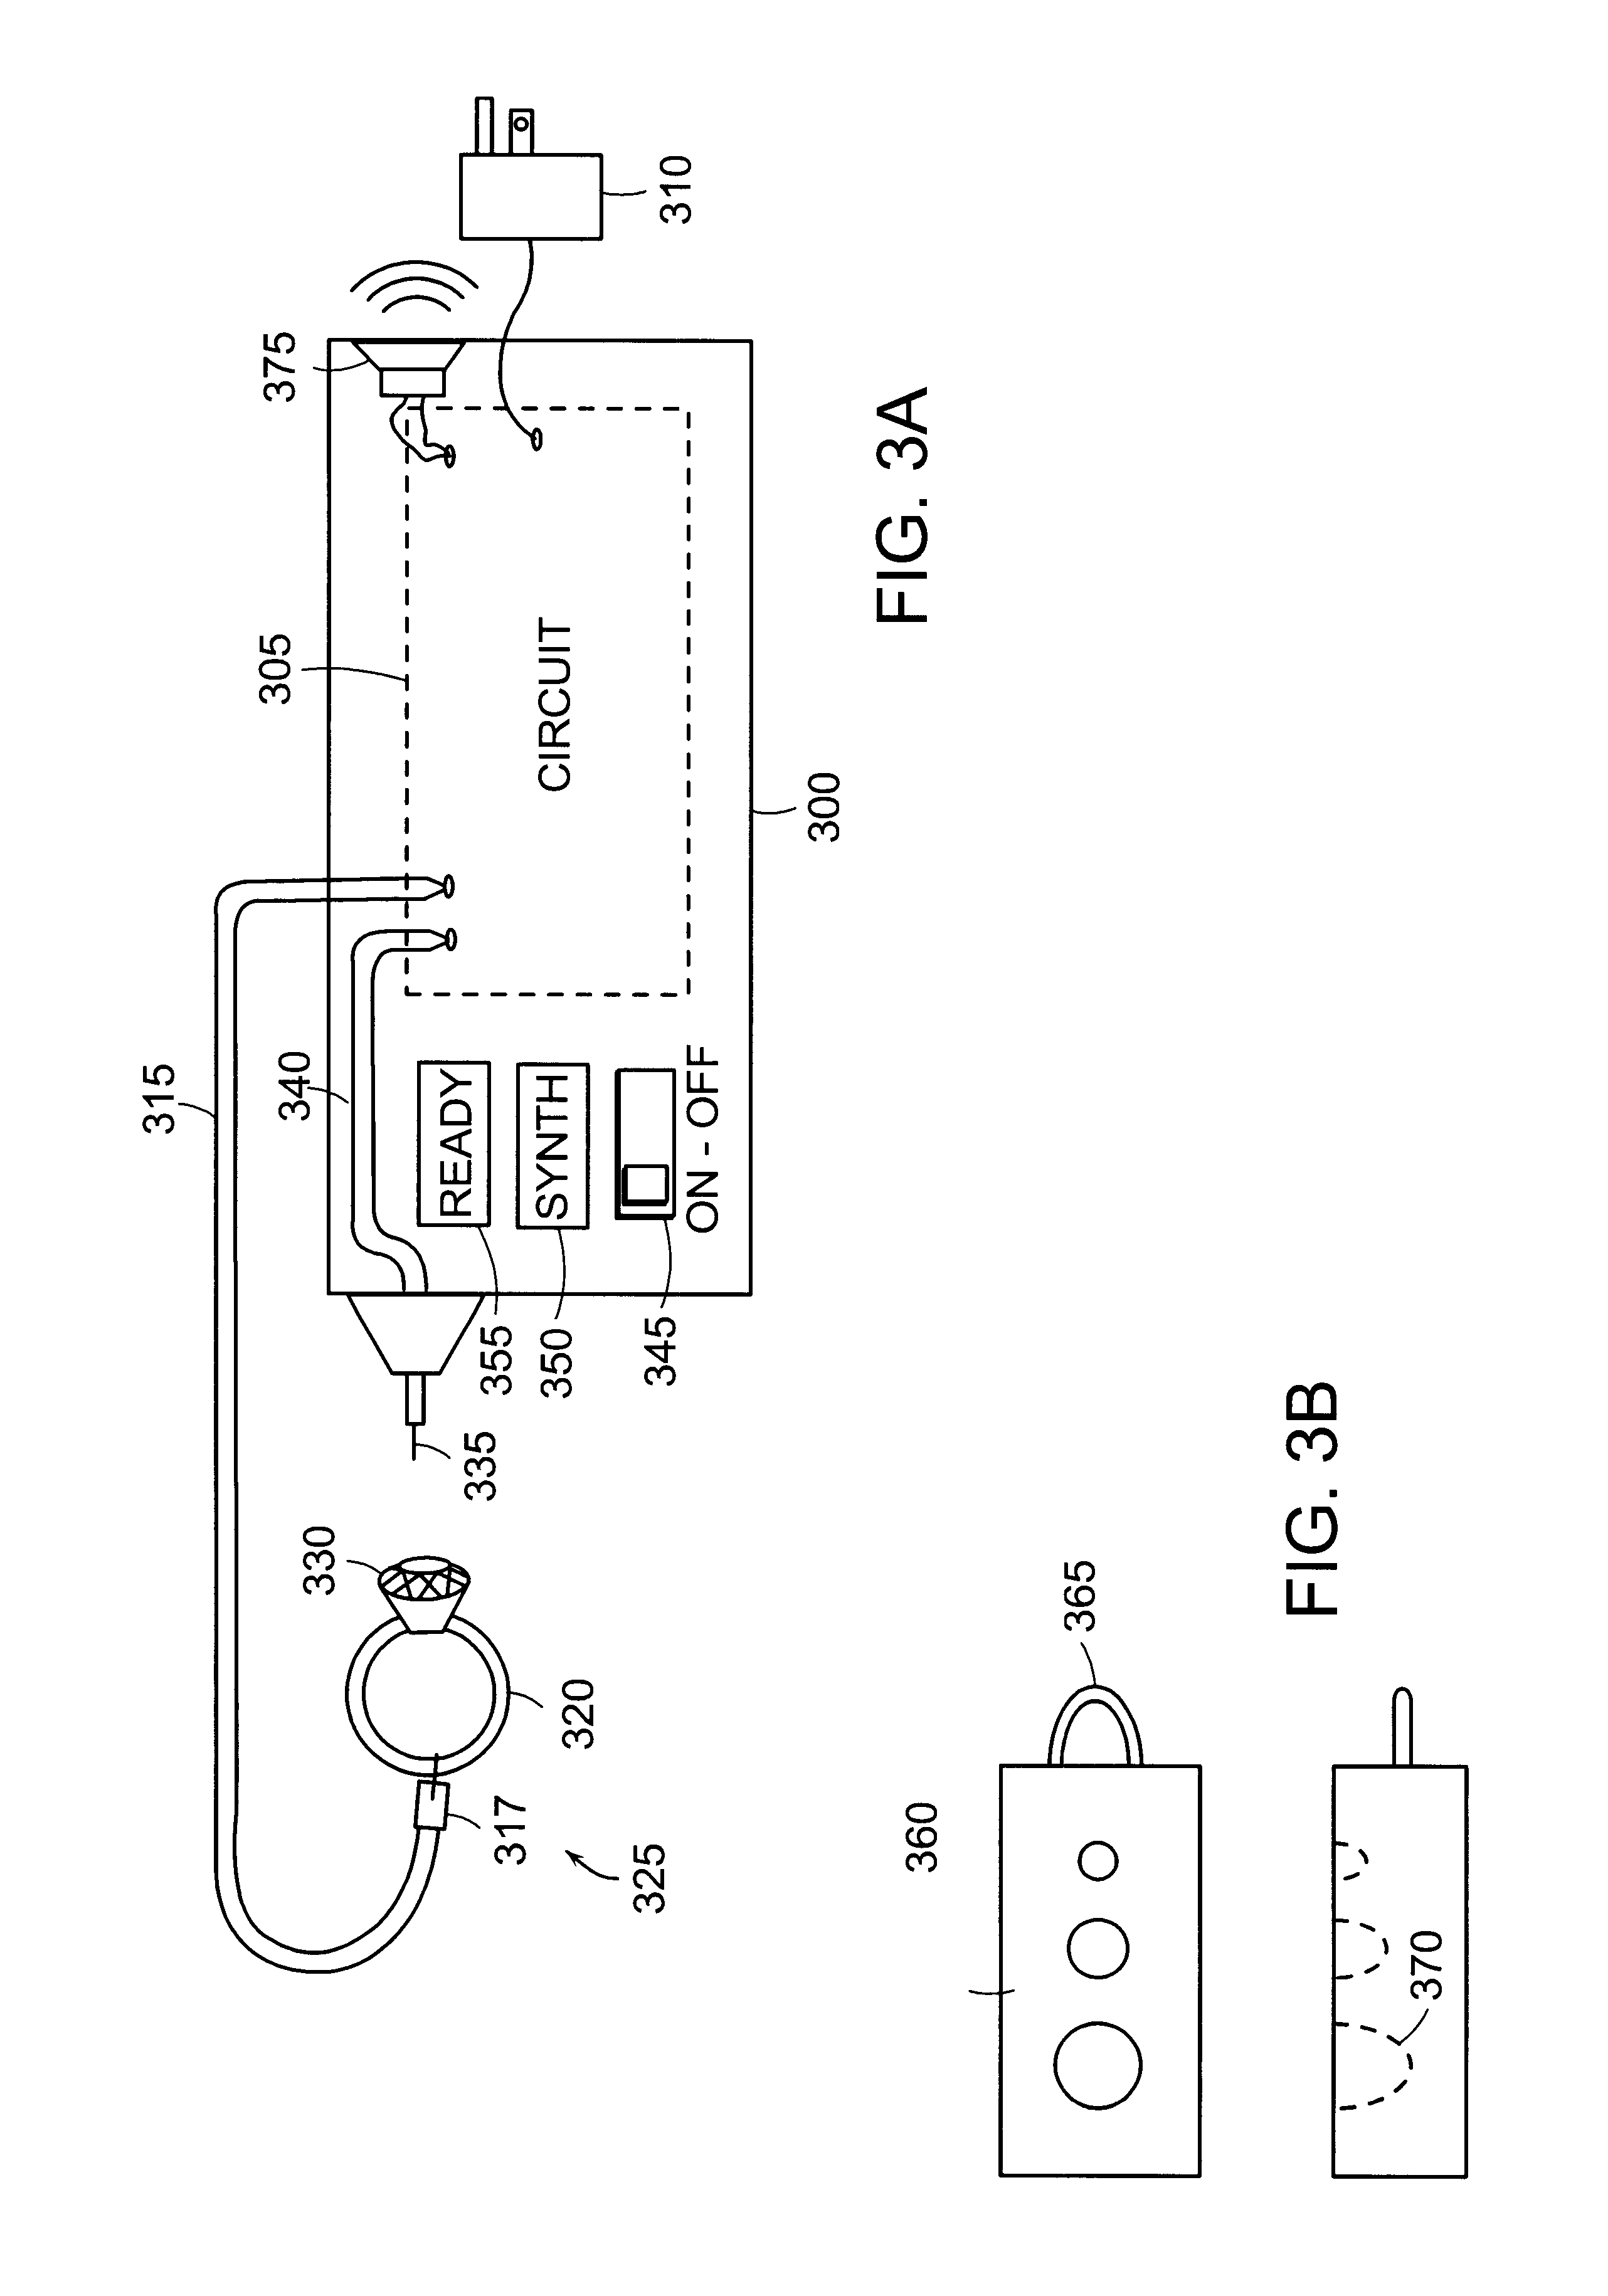 patent us6265884 - electrical conductivity gem tester